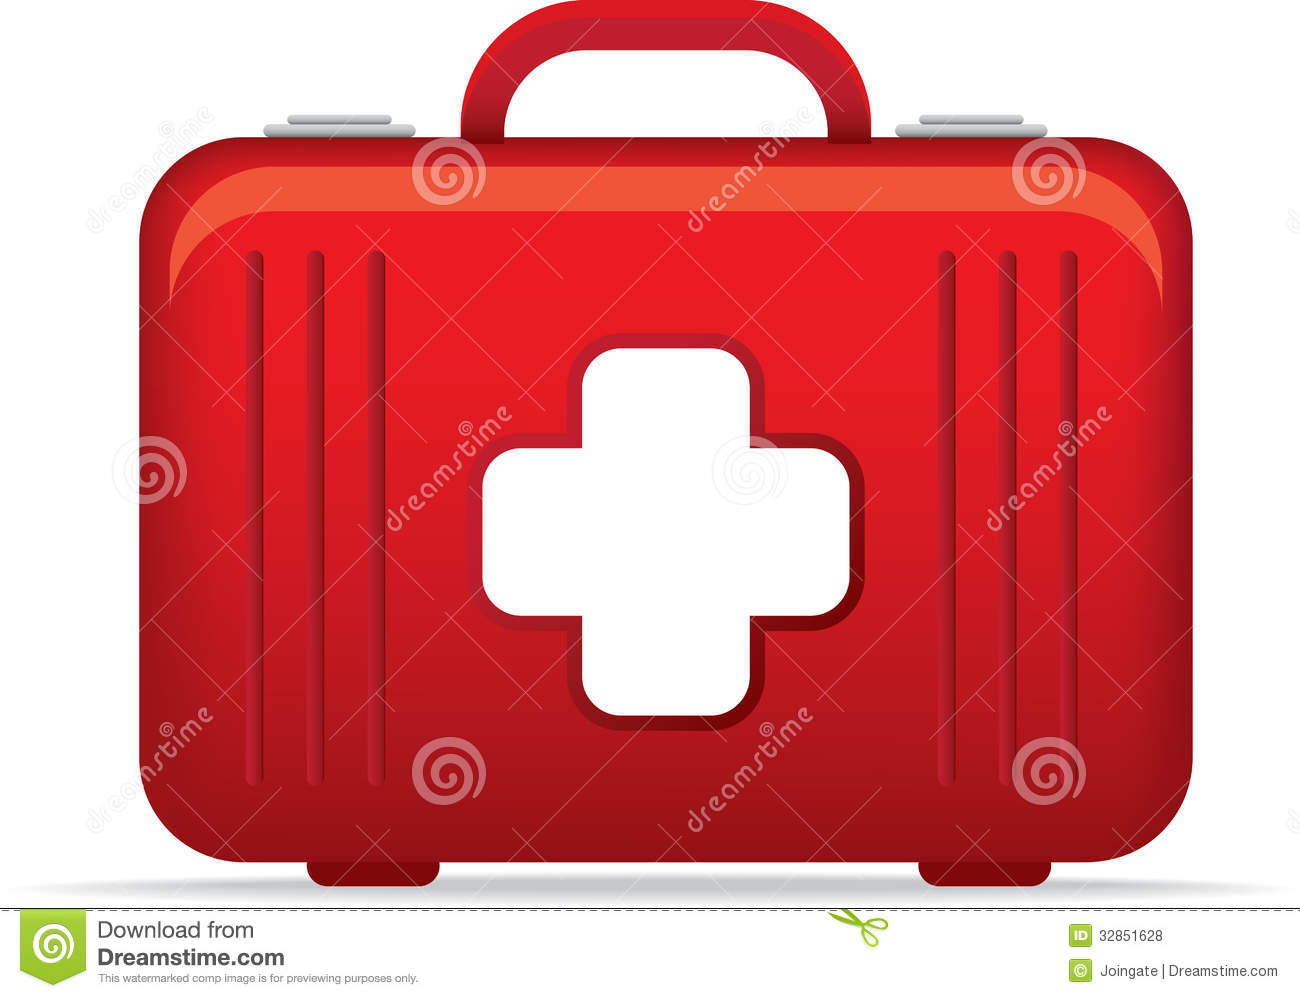 Red Cross clipart doctor bag Emergency Clipart Doctor's Bag (56+)